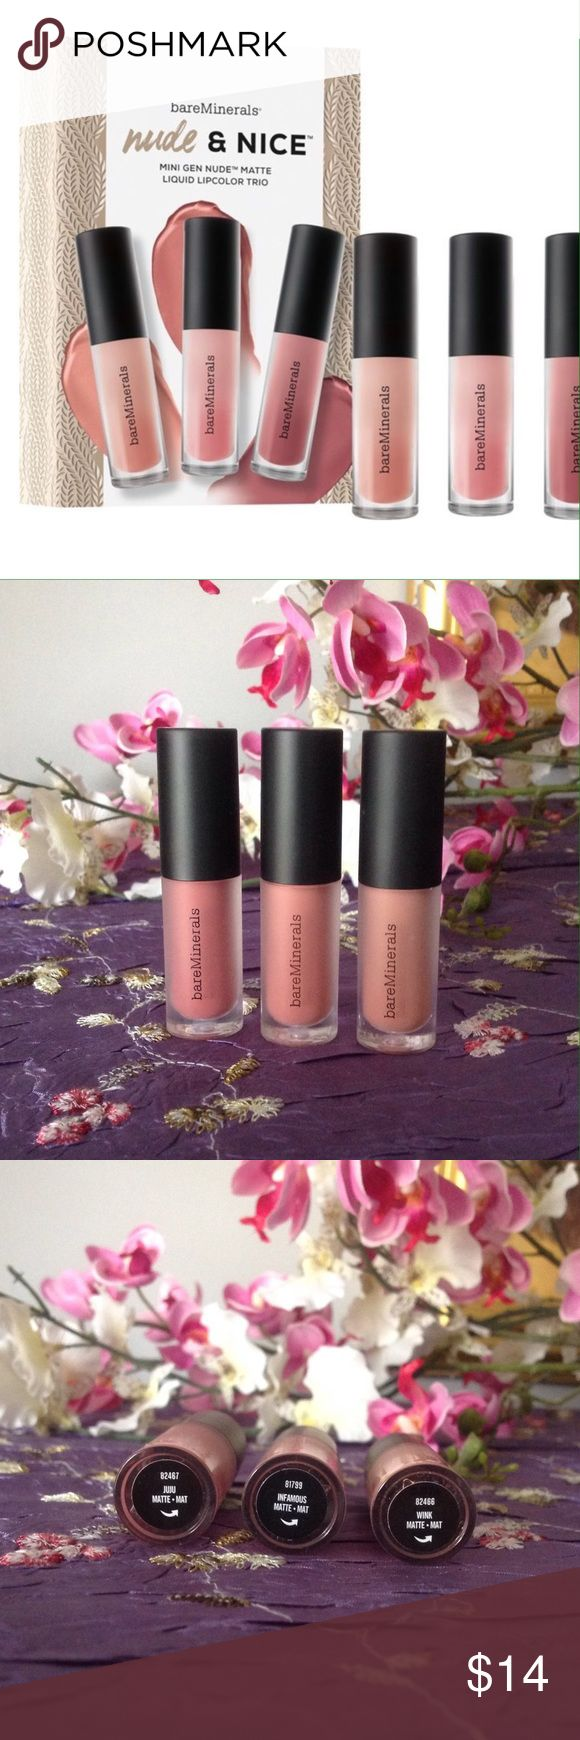 Colour care london lipstick price - 25 Best Ideas About Pink Lipstick Shades On Pinterest Lip Colors Blush On And Pink Lips